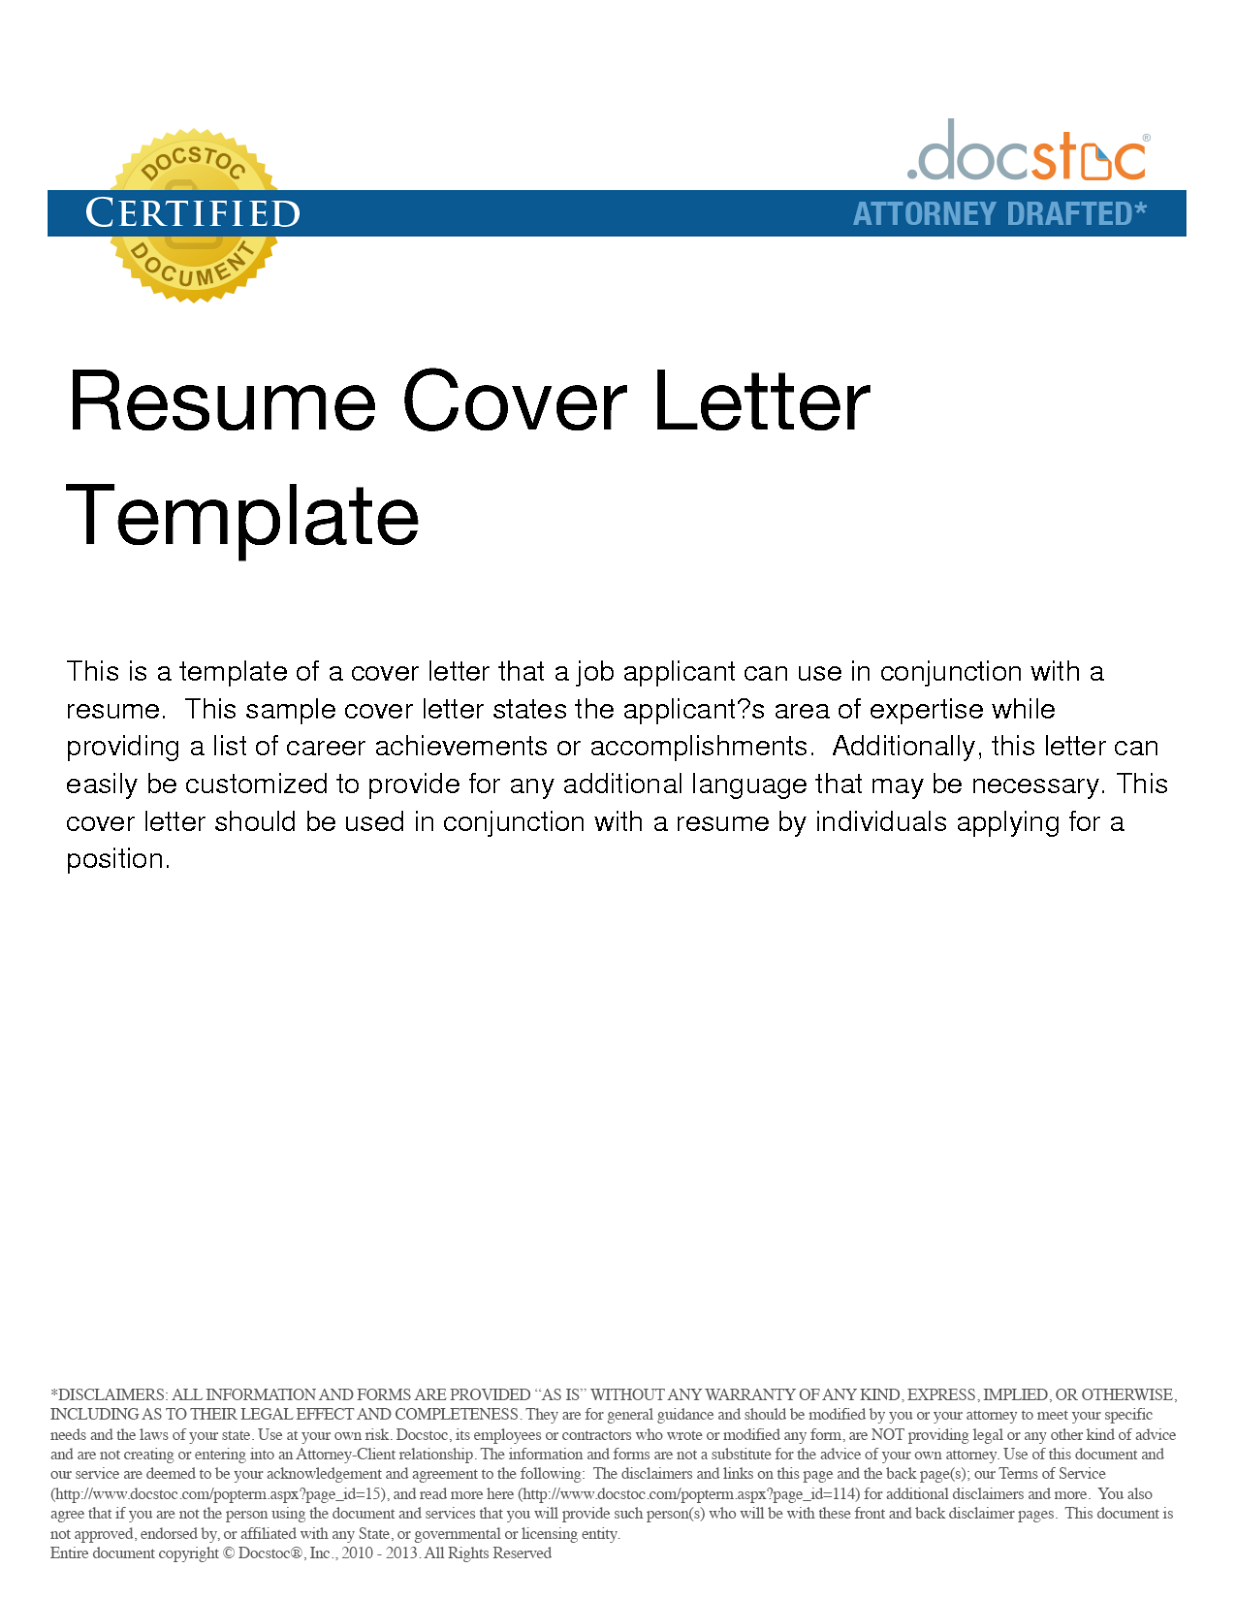 best images about cover letters on pinterest cover letter resume go promotion cover letter templates promotion - Cover Letter Internal Position